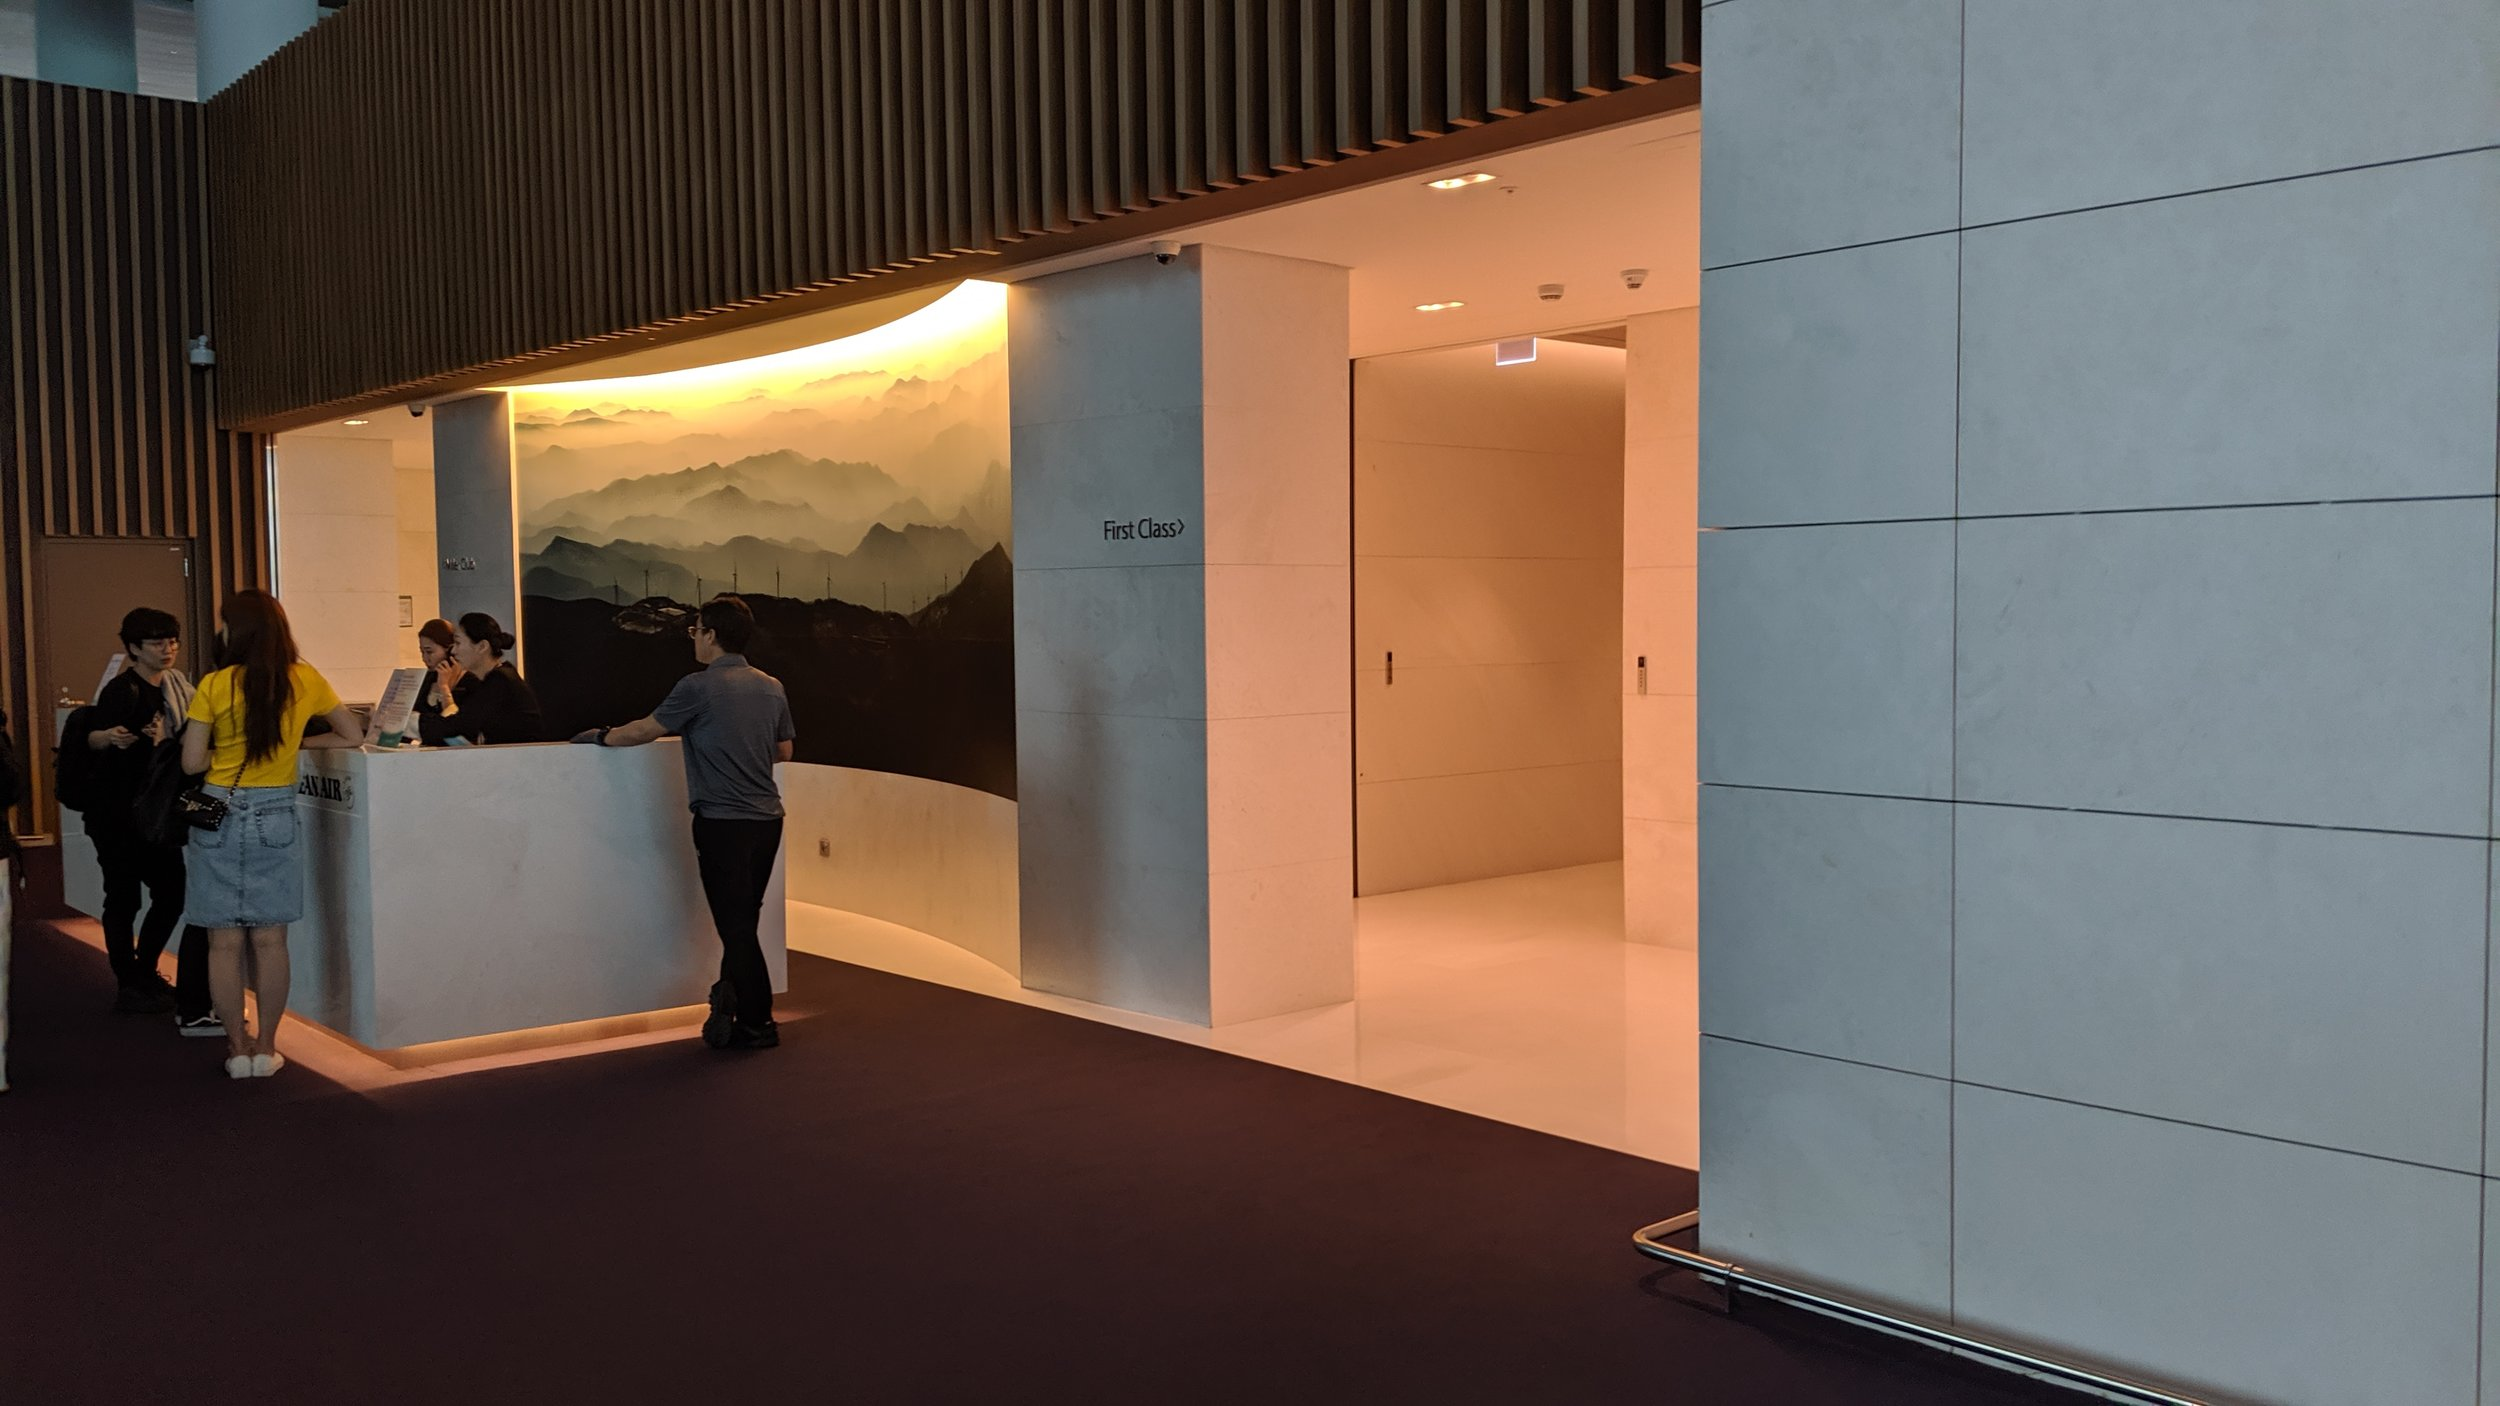 KAL-First-Class-Lounge-ICN-Entrance.jpg